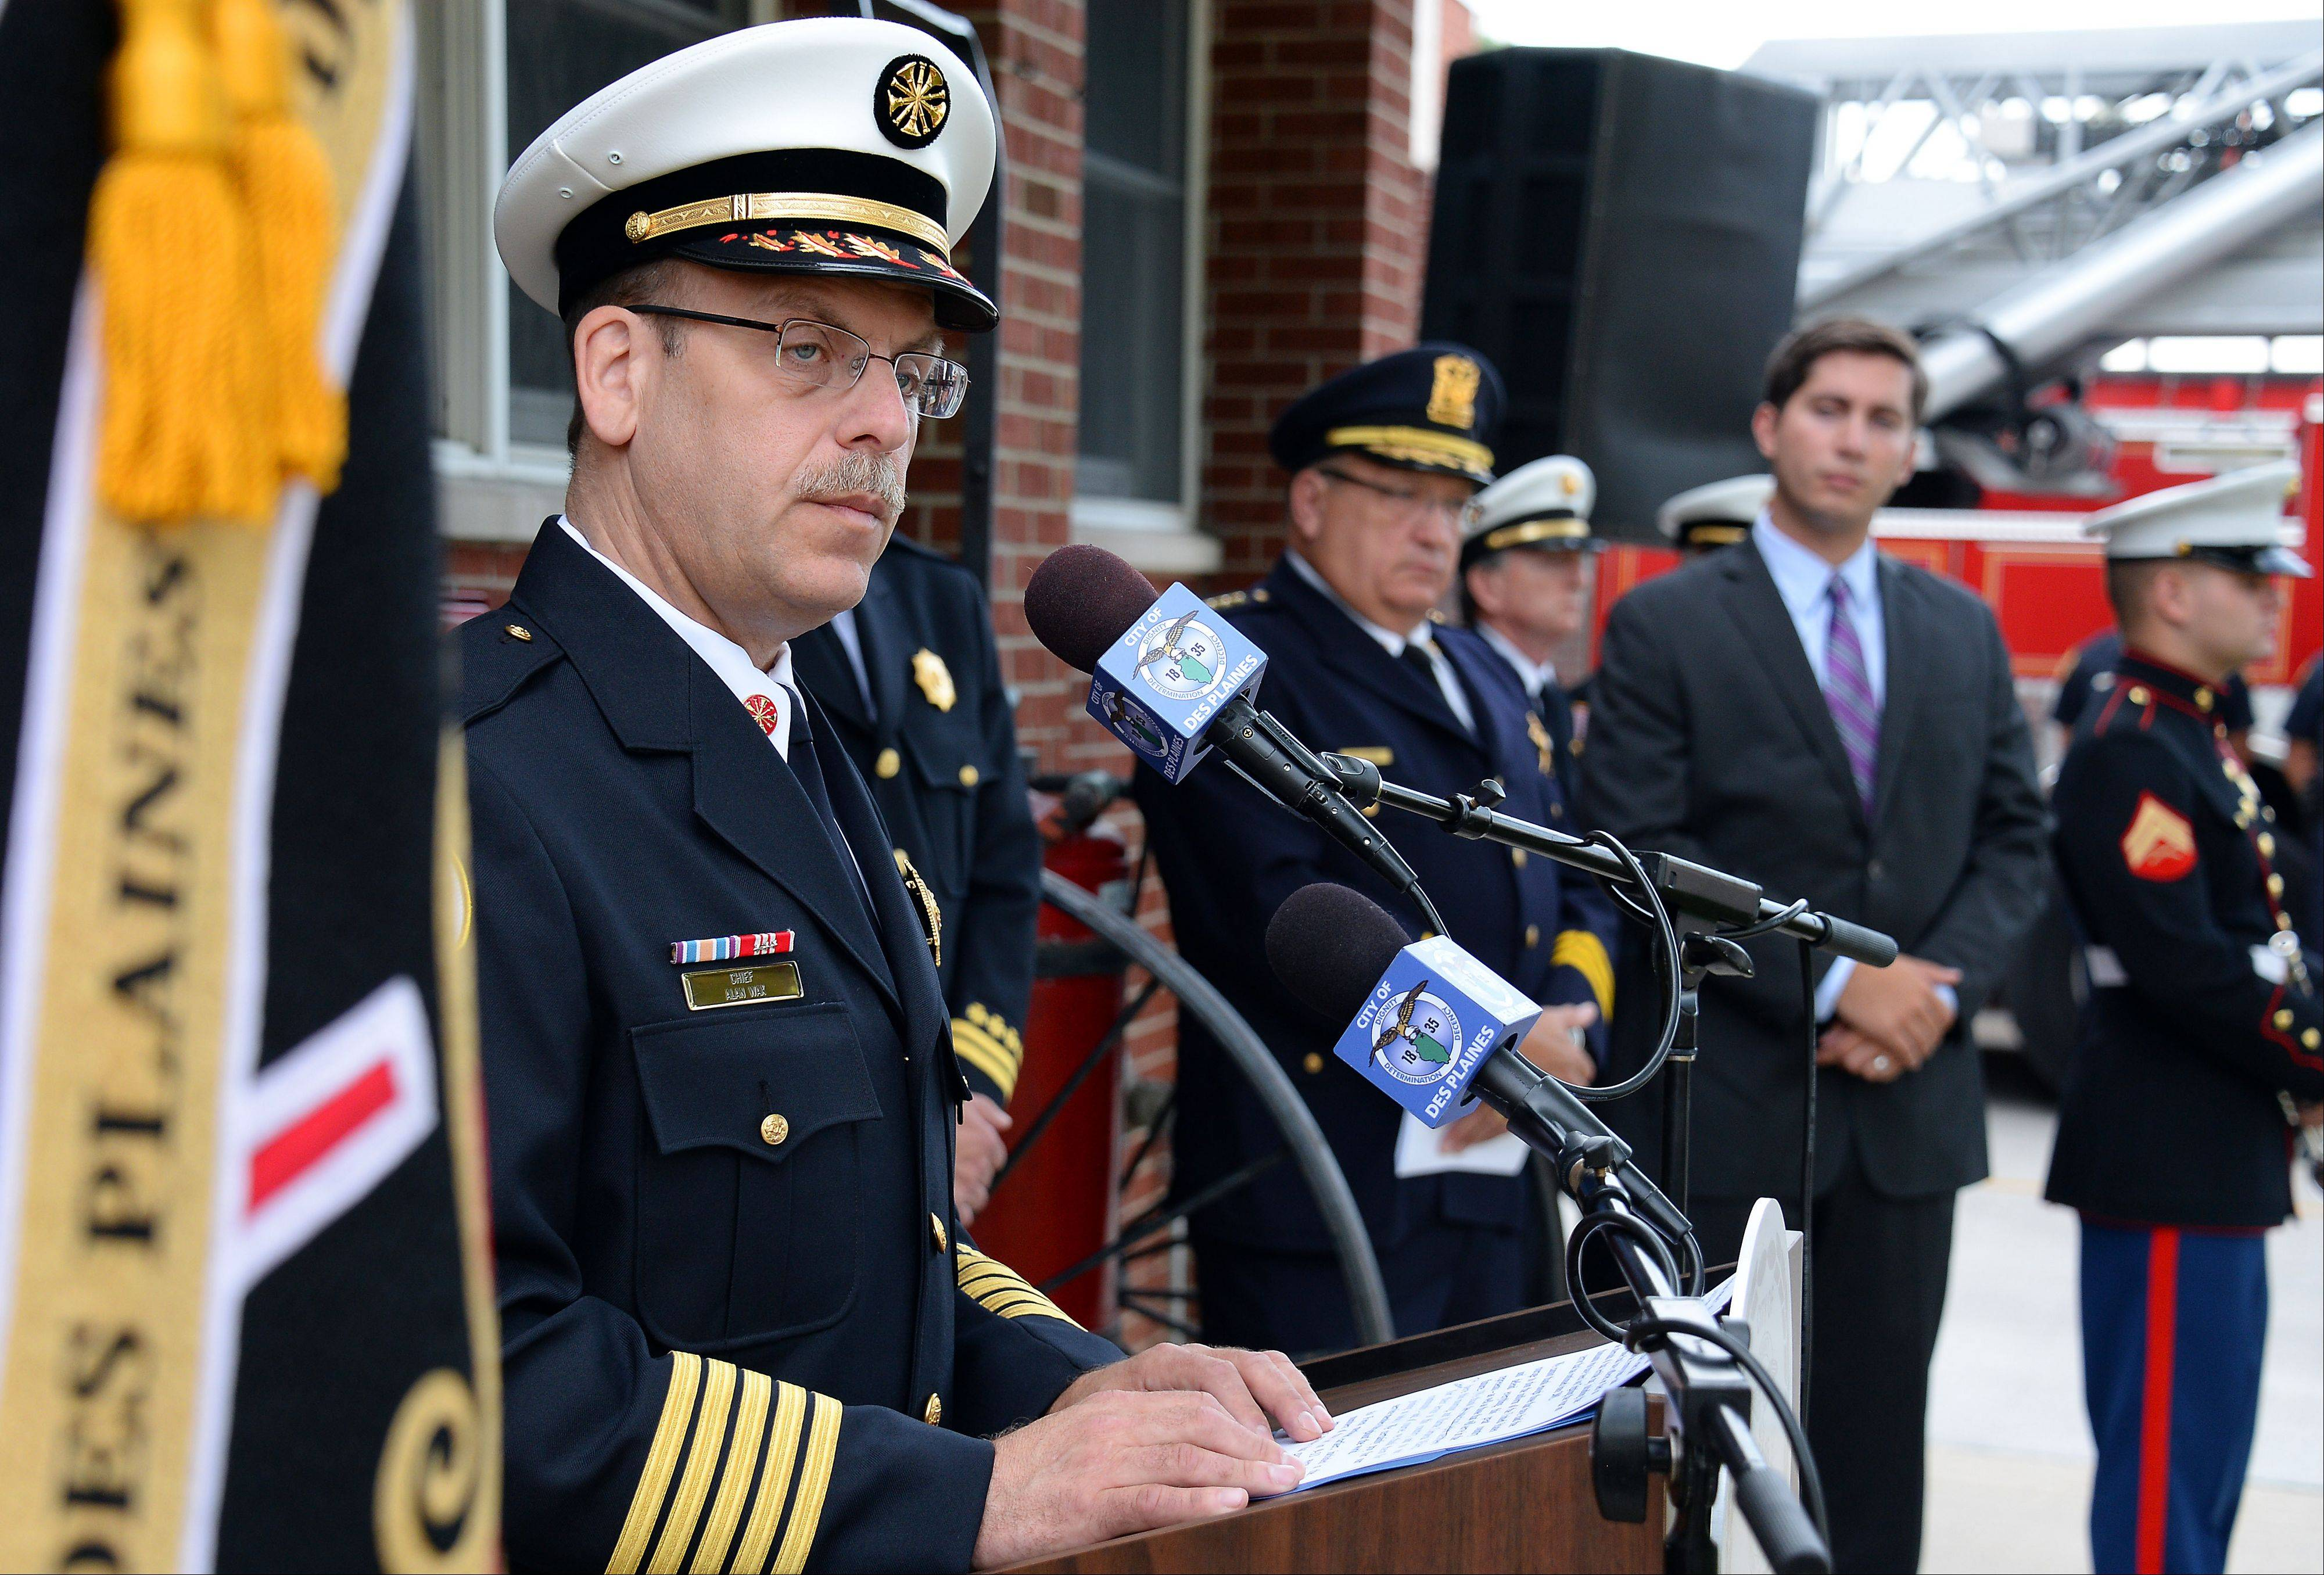 Des Plaines fire chief Alan Wax honors the fallen with his words at the September 11th memorial and Patriot Day ceremony at fire station 1 on Wednesday.